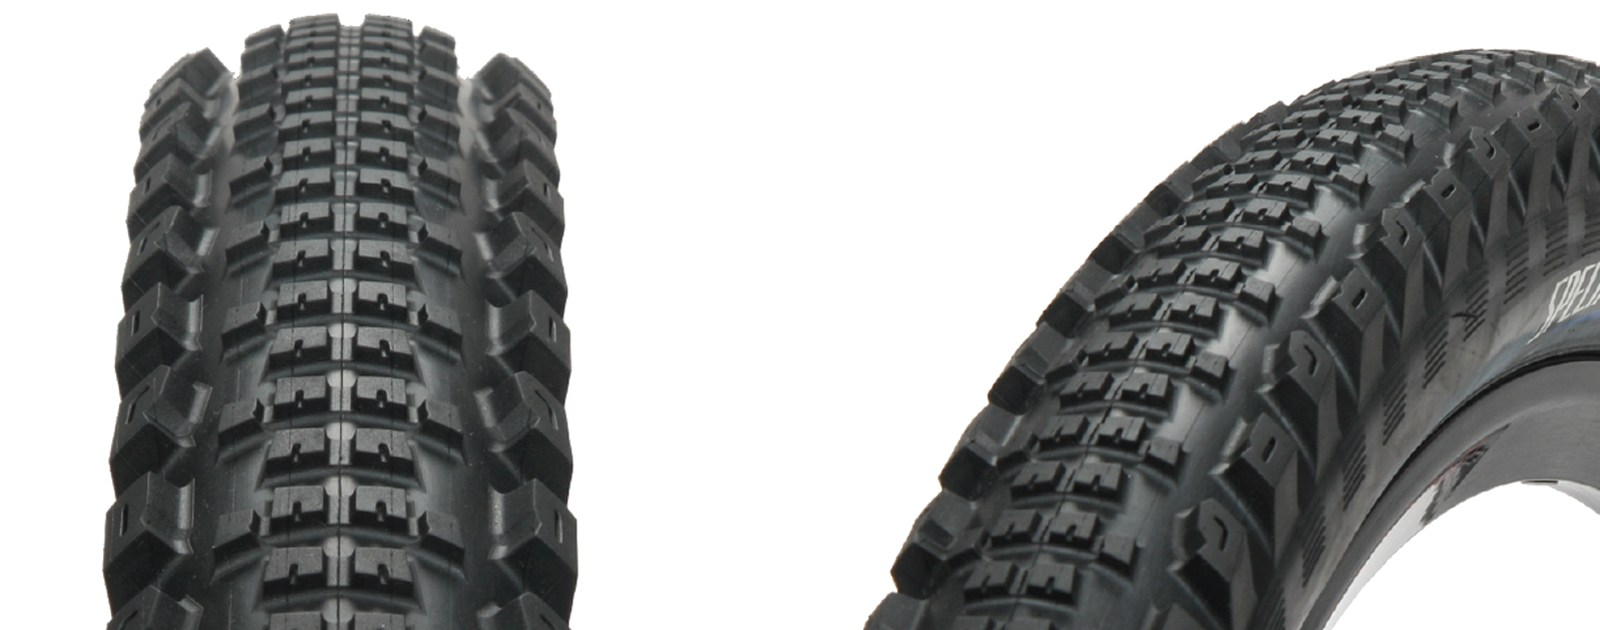 The gap between the needs of Enduro and DH riders seems to be shrinking. Both Curtis Keene and Aaron Gwinn have been using this tire.